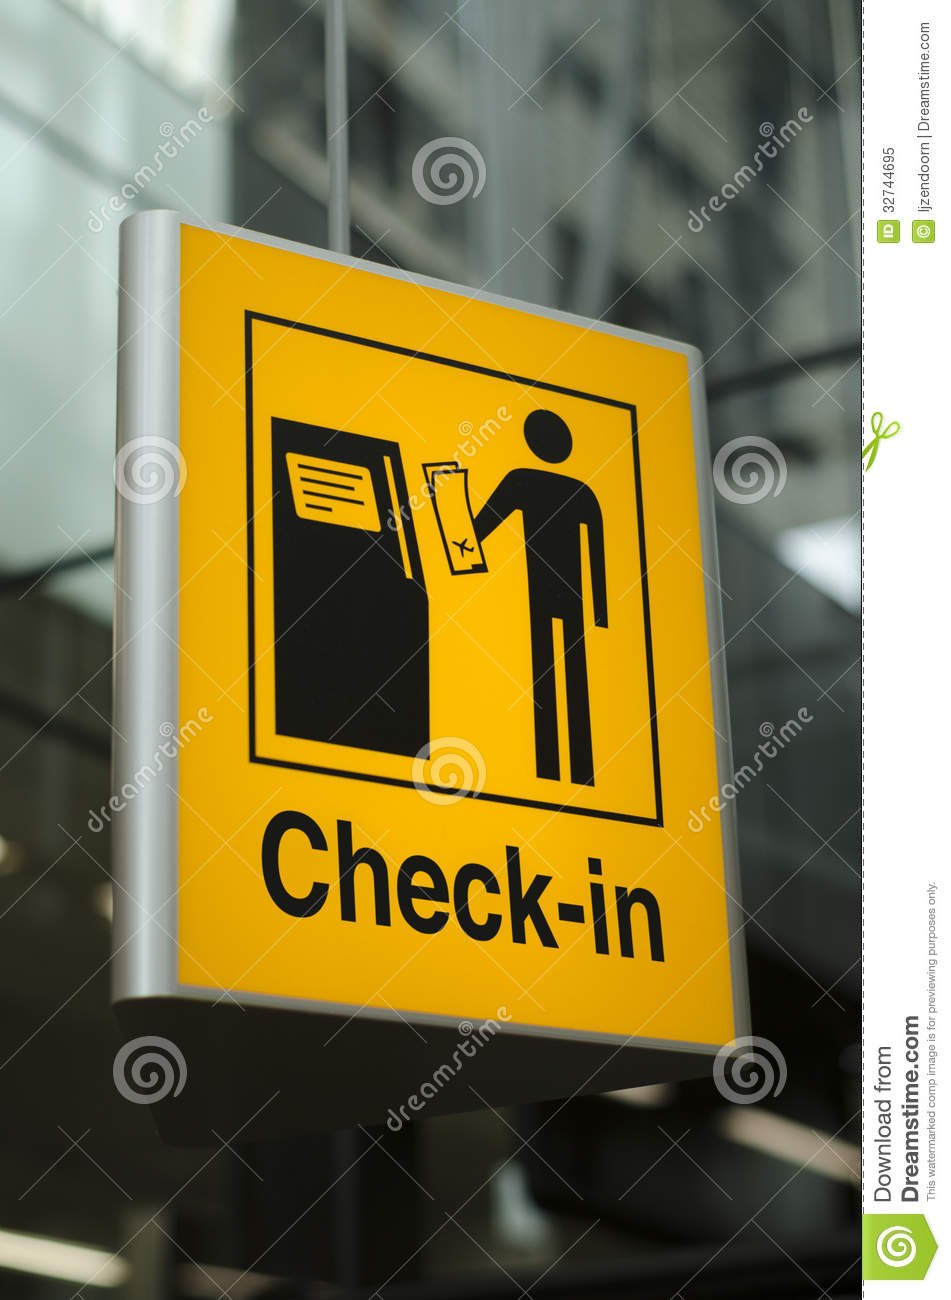 Check-in Sign At Airport Royalty Free Stock Photo - Image: 32744695